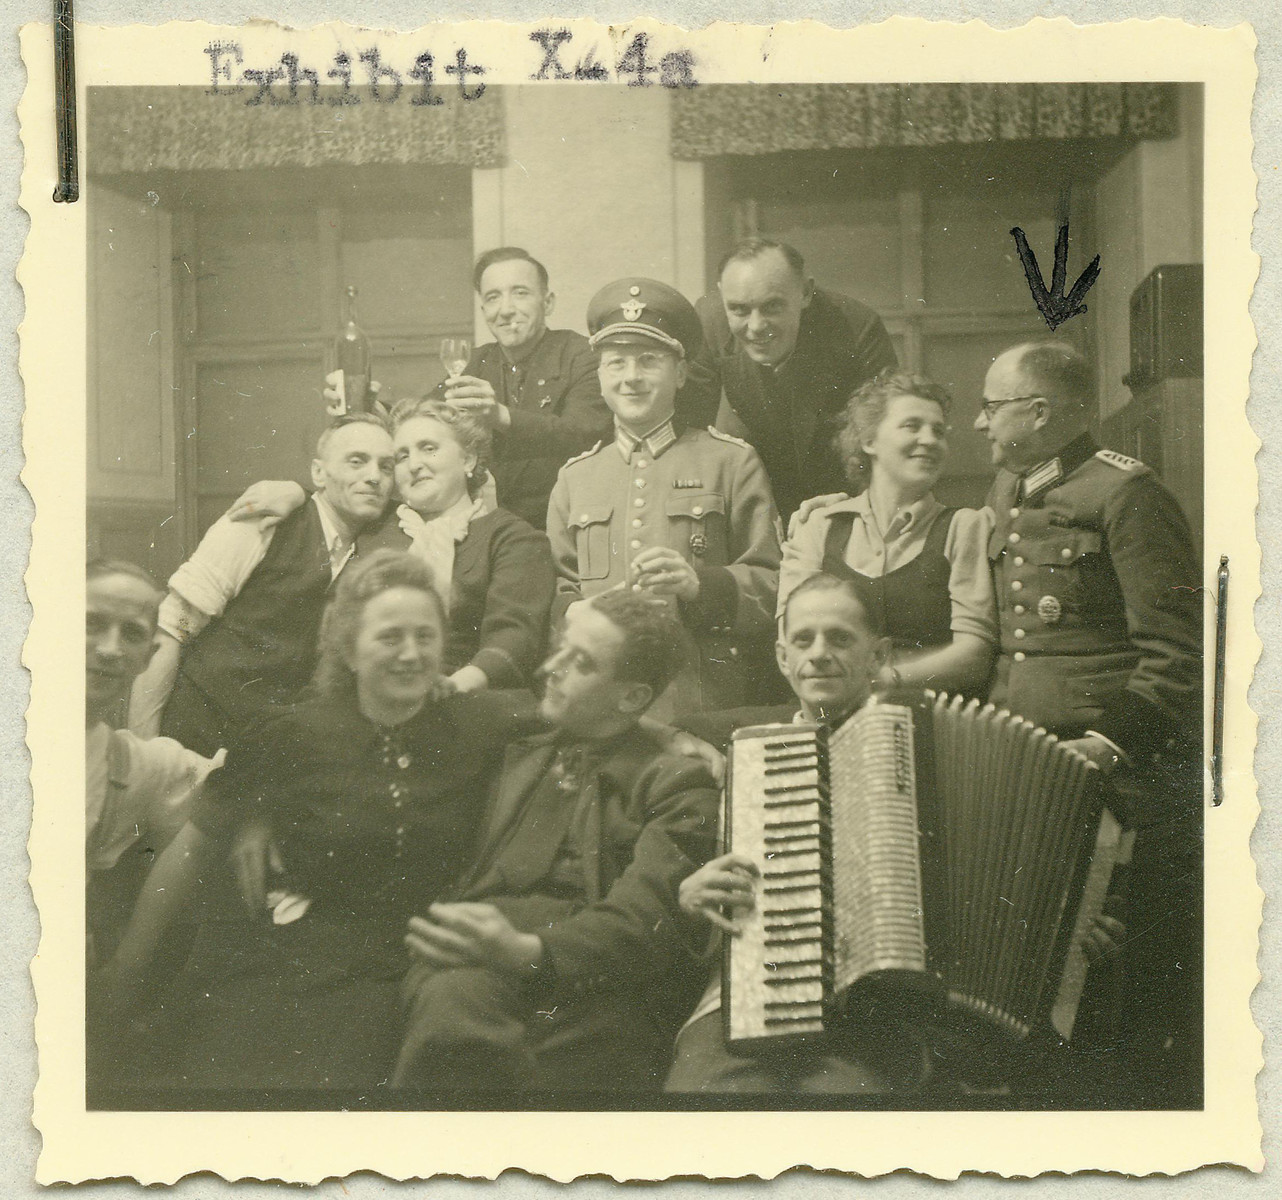 Group portrait of the staff of the Hartheim euthanasia facility relaxing with an accordian.